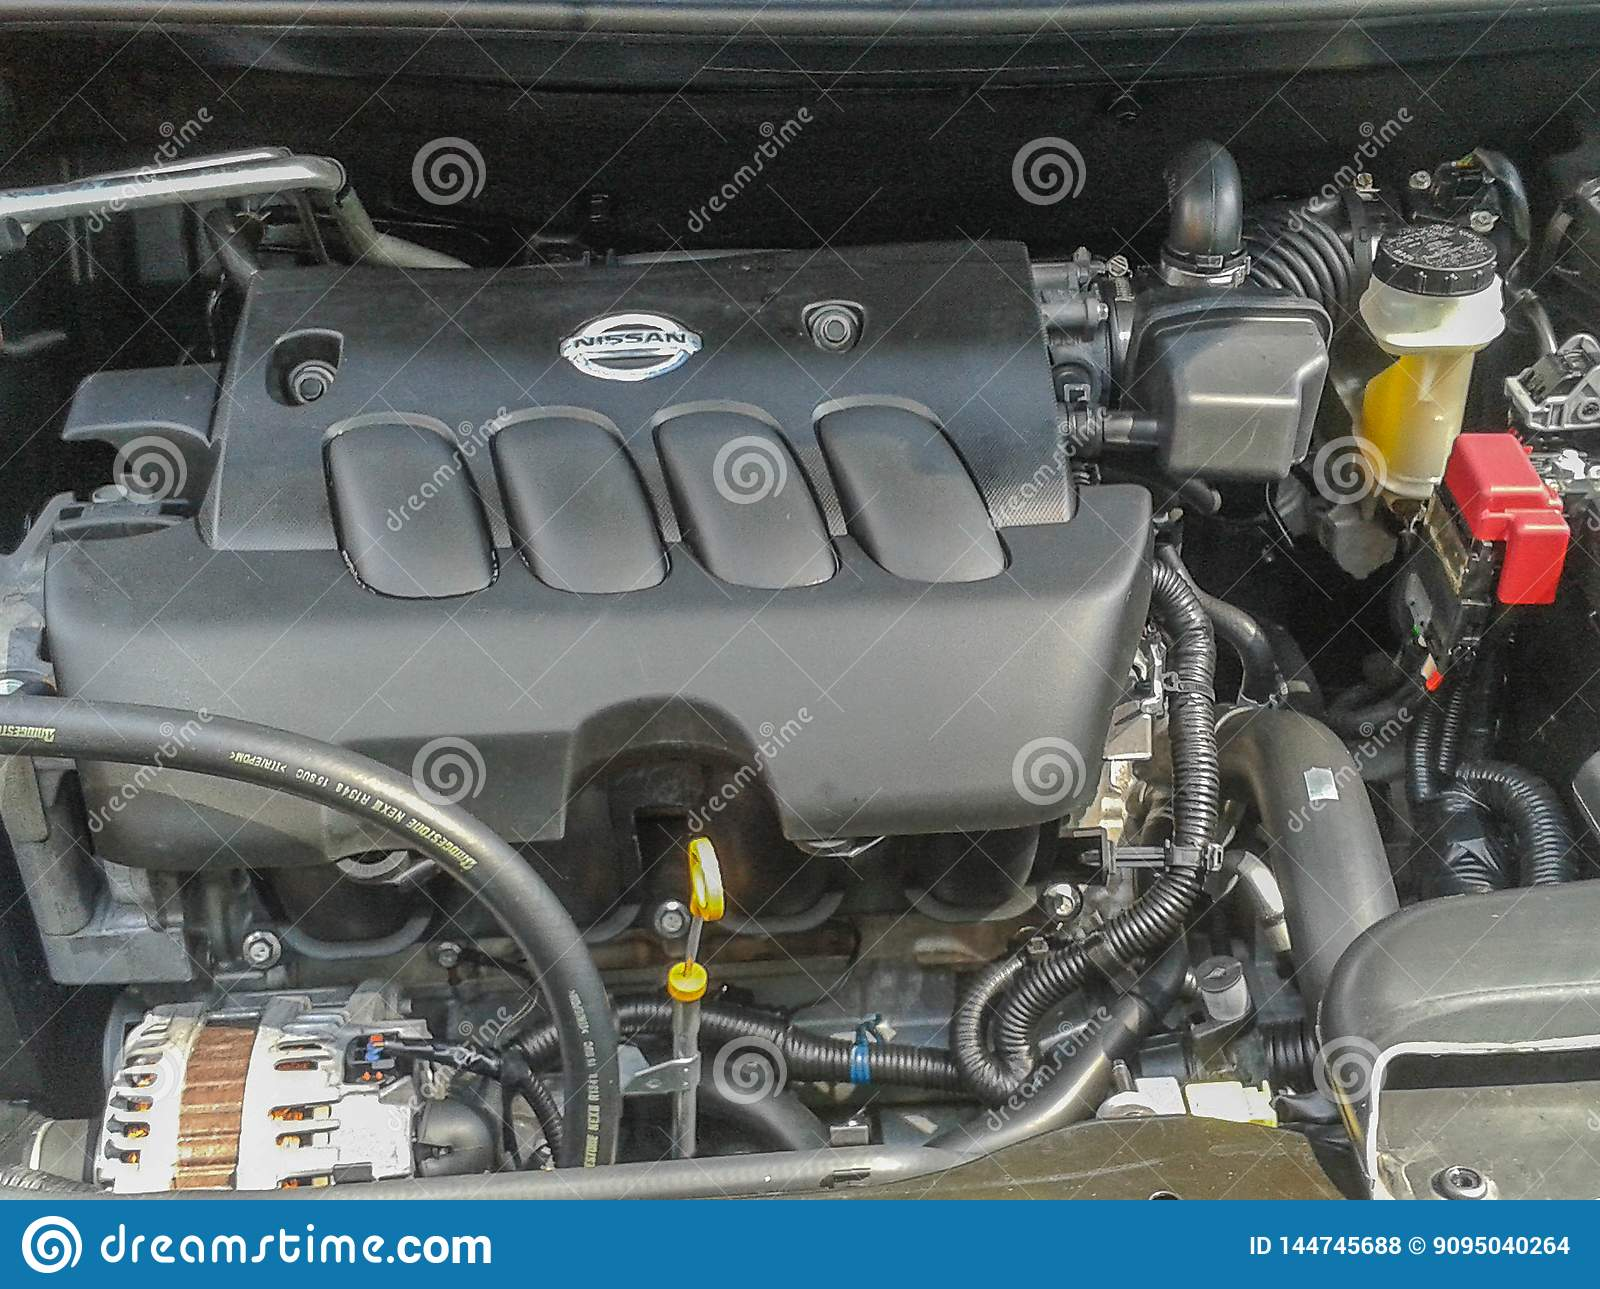 Part of the car engine.